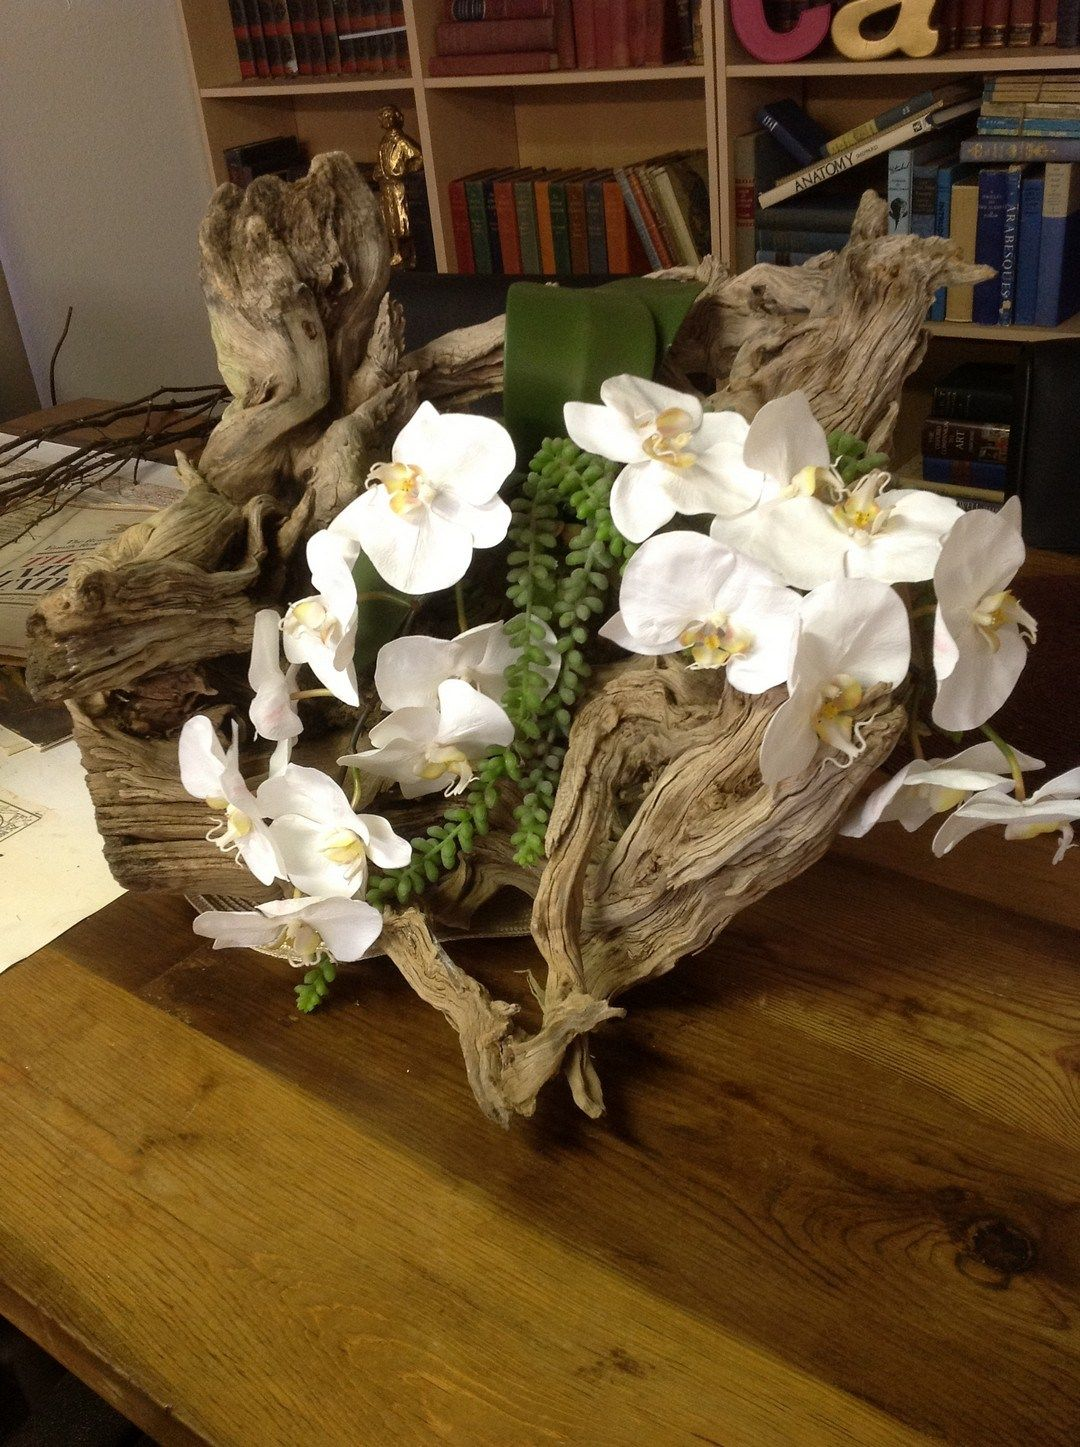 Best Orchid Arrangements With Succulents And Driftwood 3